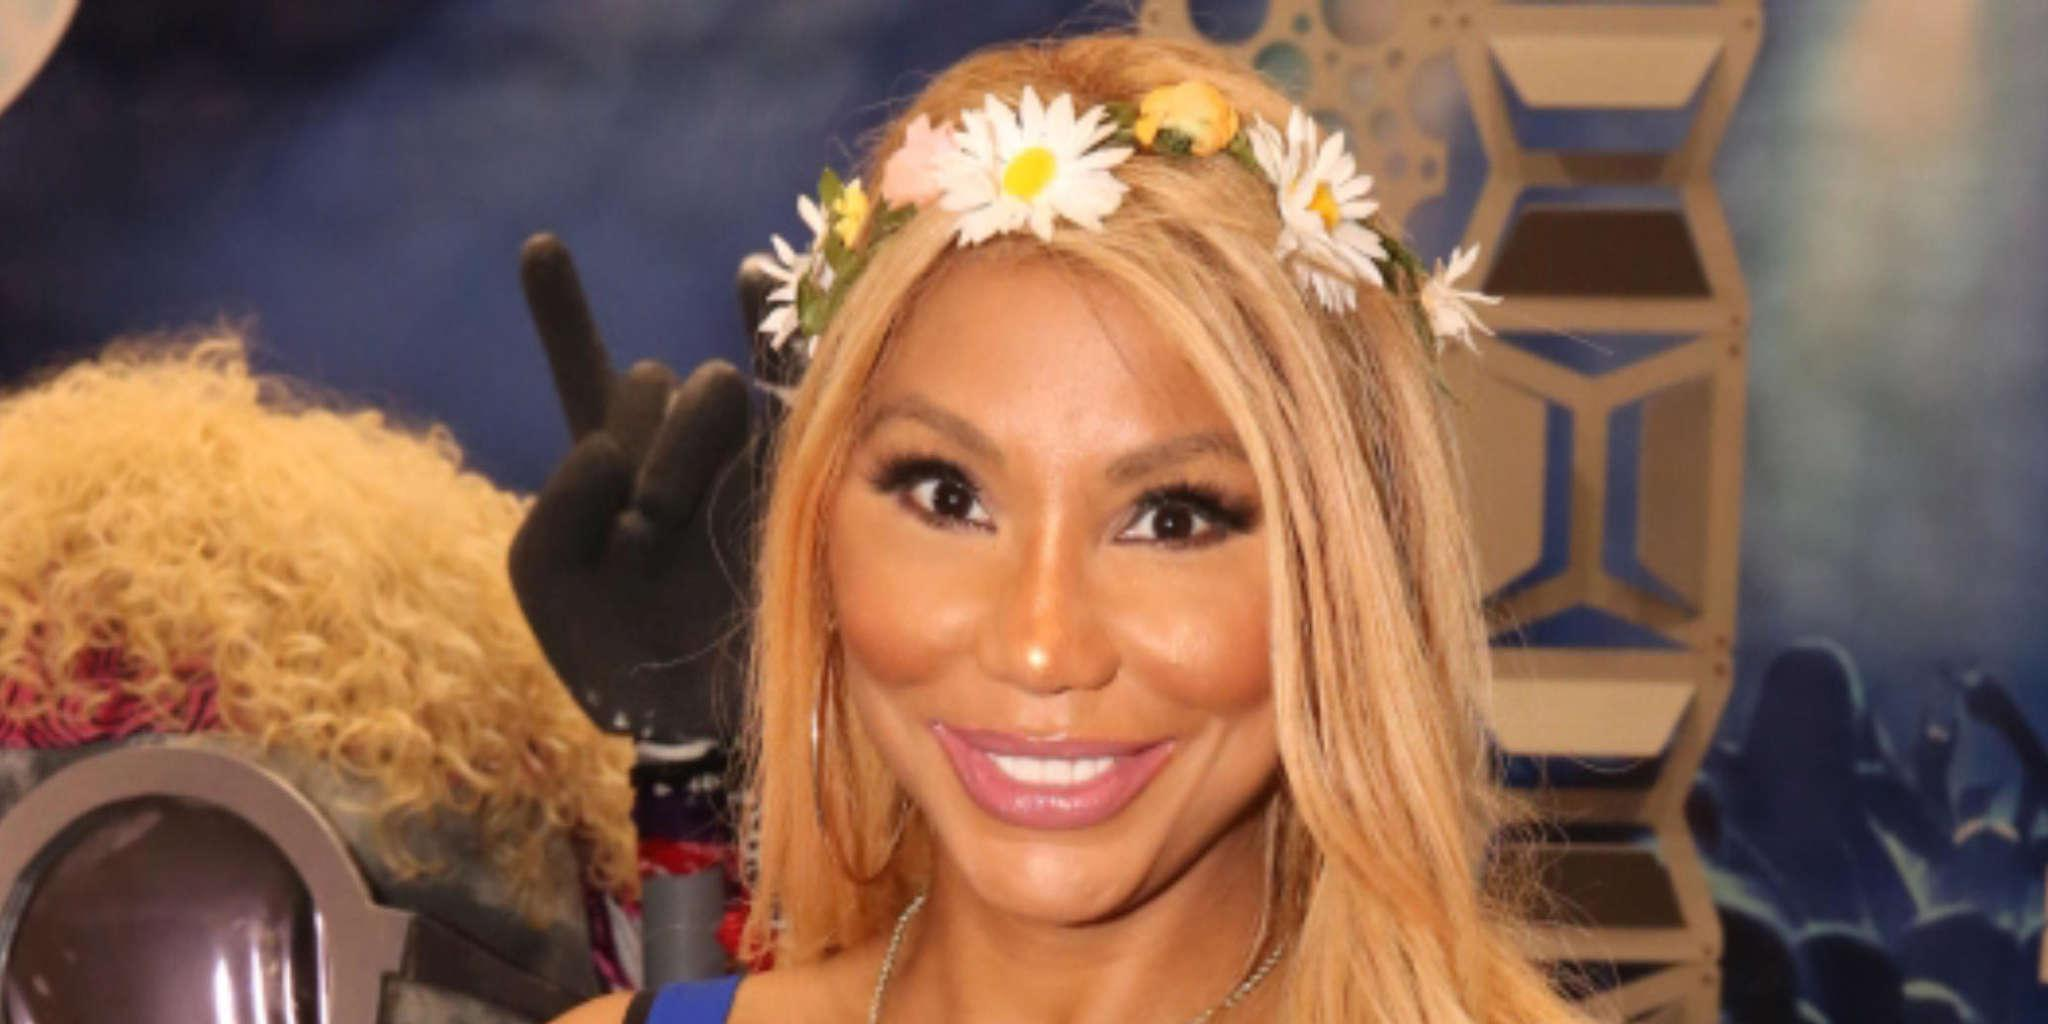 Tamar Braxton Shows Off Her Cleavage And Abs And Fans Love The Jaw-Dropping Video